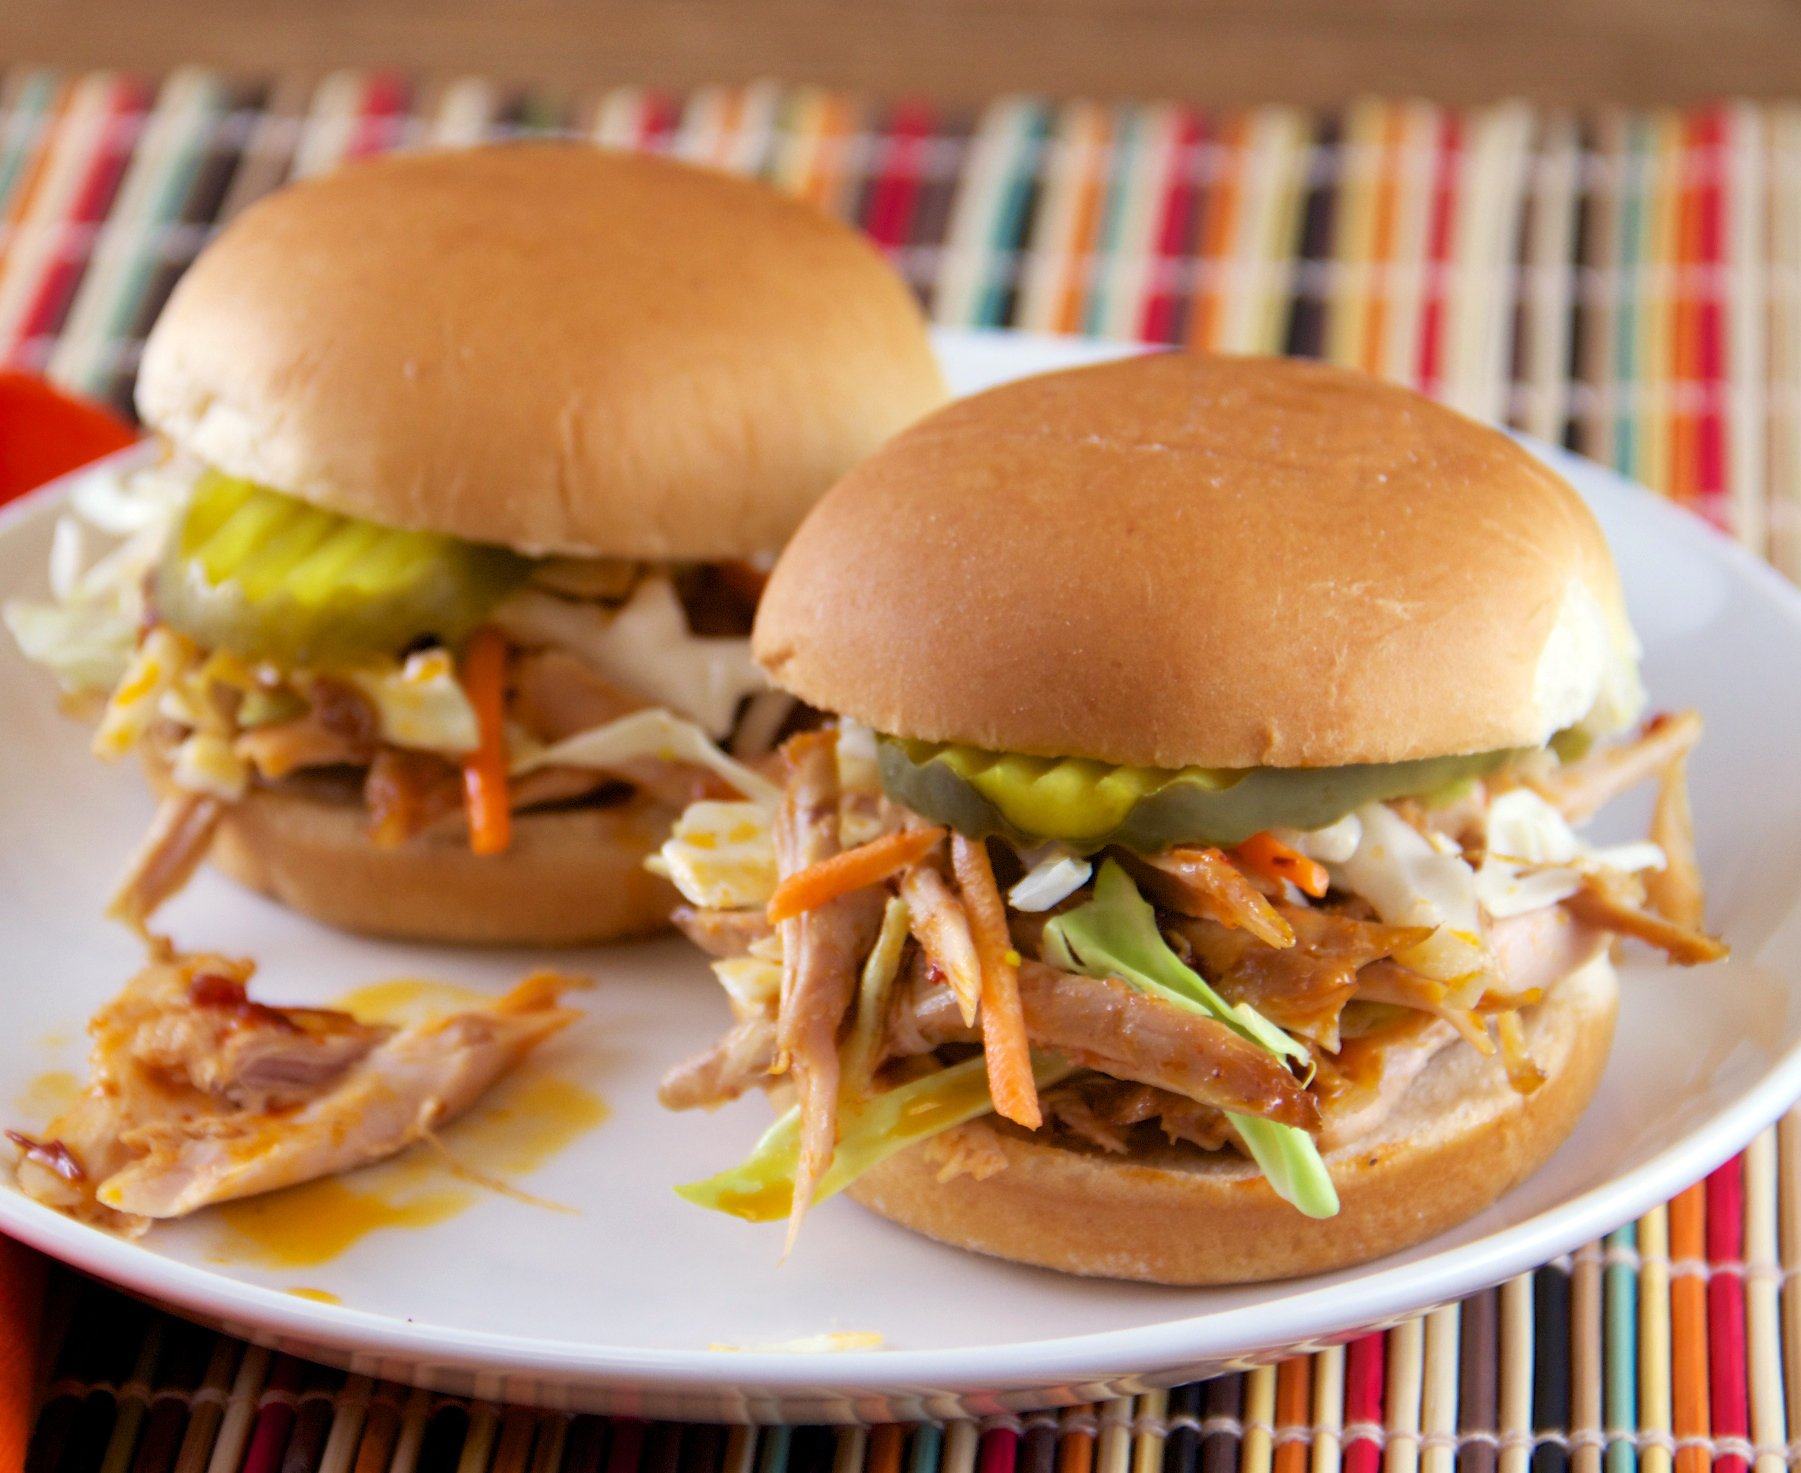 Slow cooker chipotle turkey barbecue #bbq @hamiltonbeach everydaygoodthinking.com